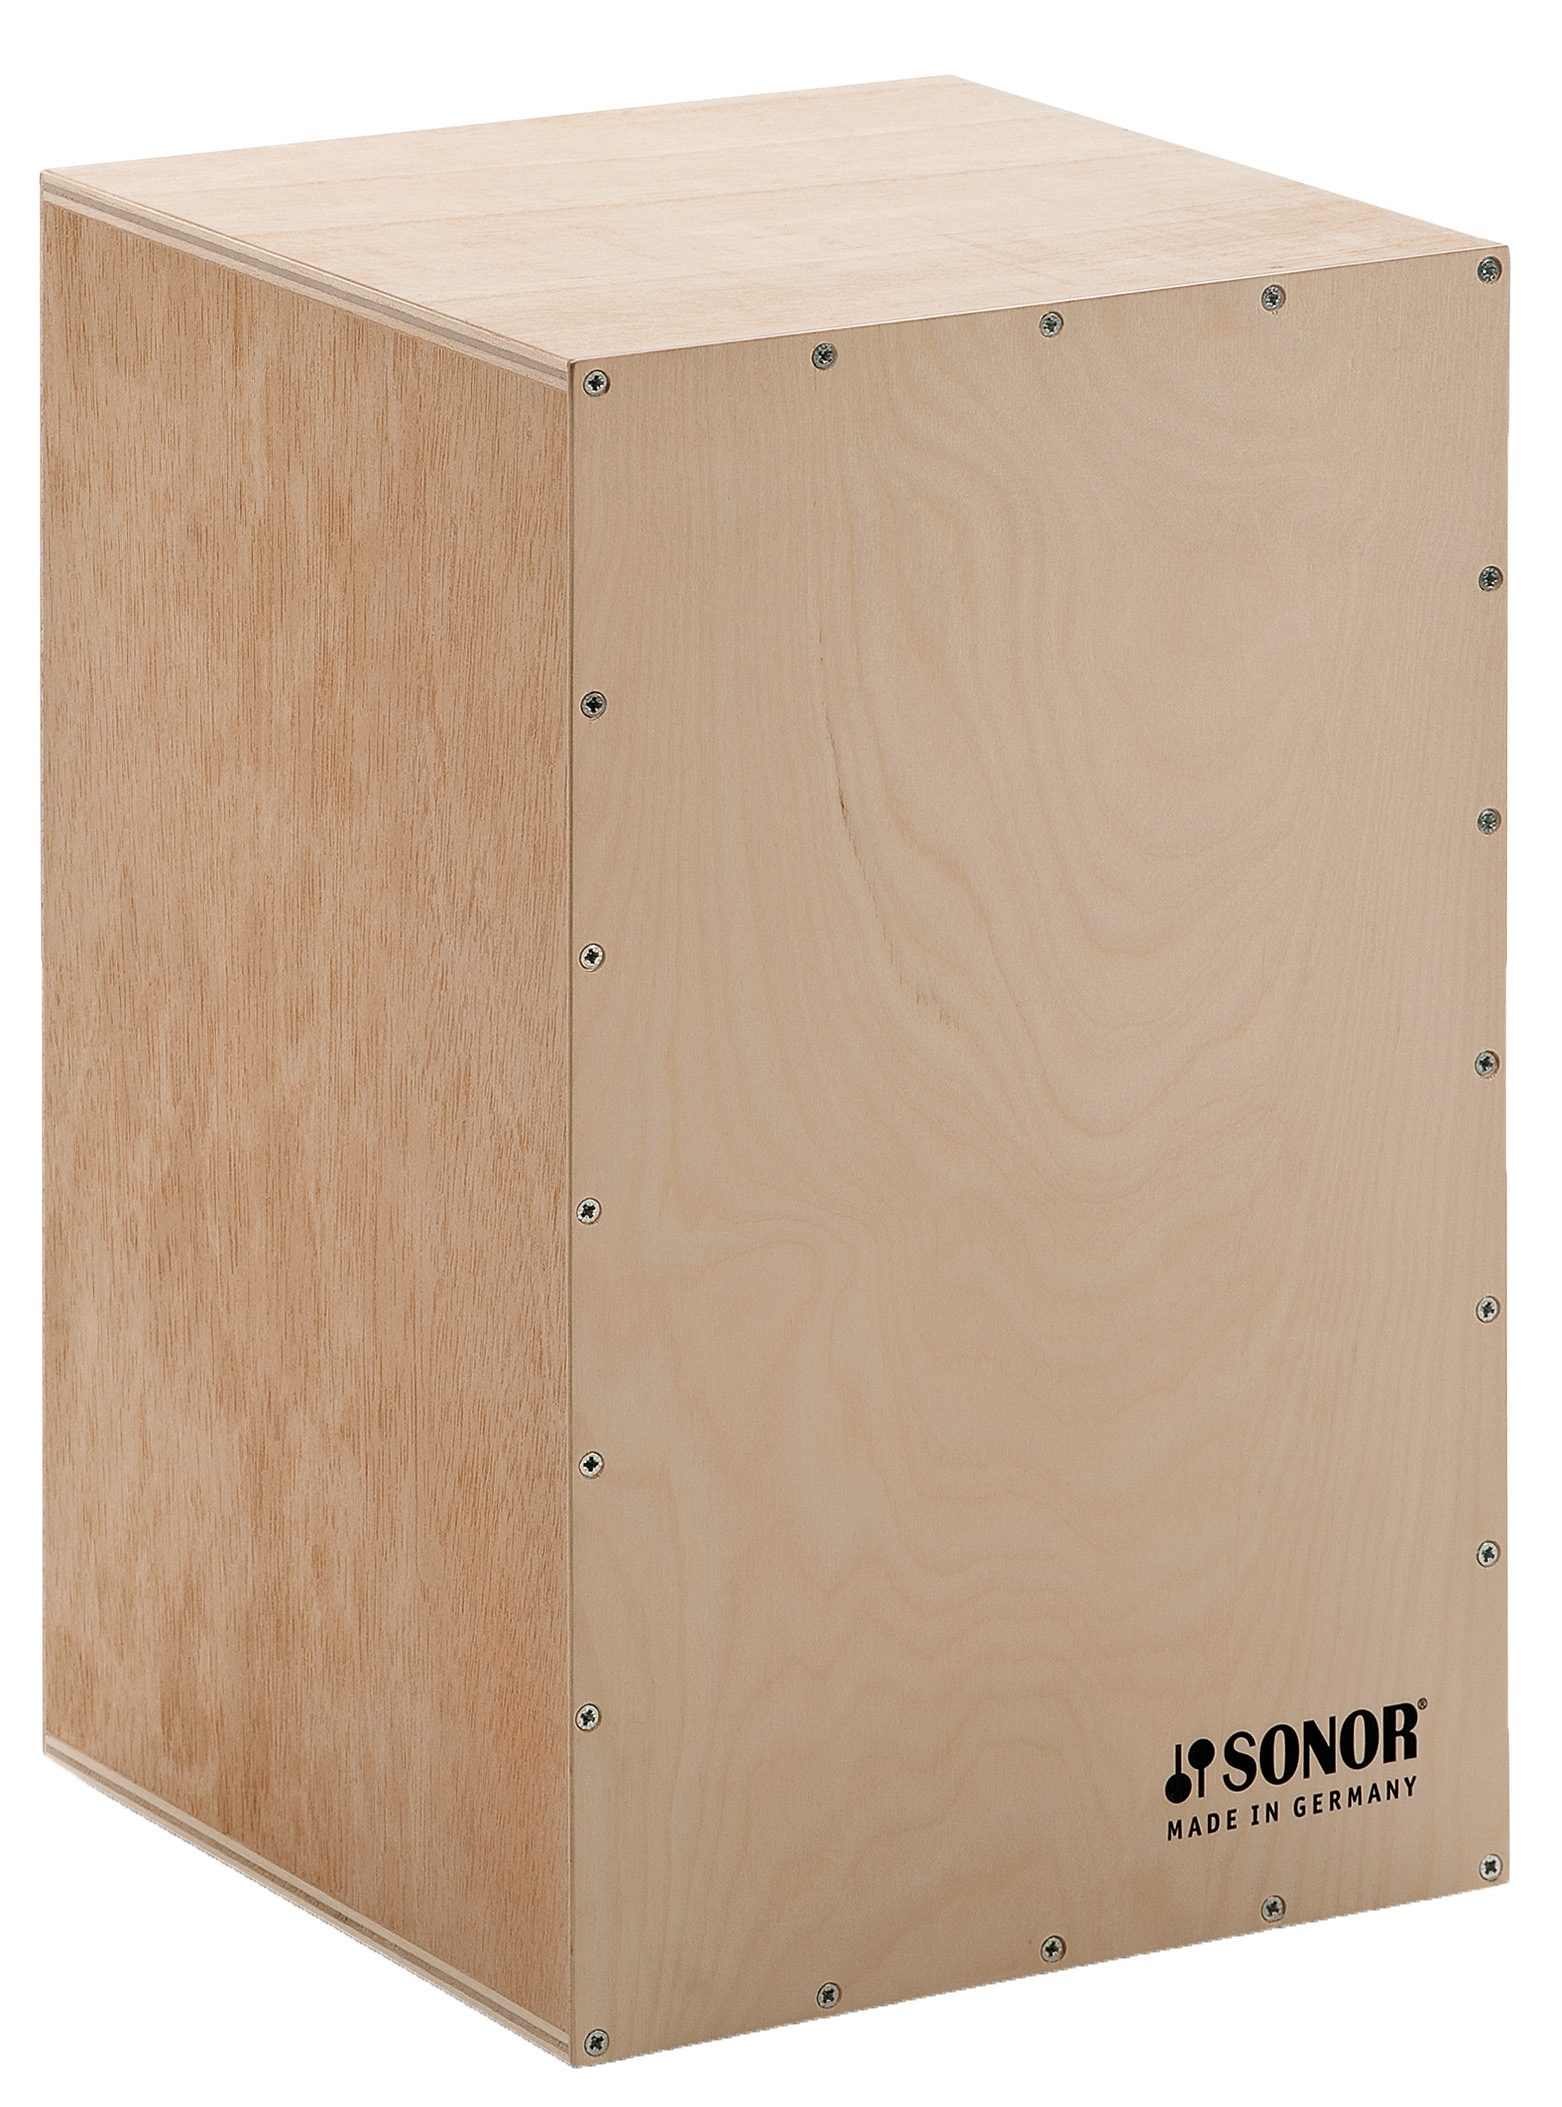 SONOR Cajon, »Do it your self Cajon für Erwachsene«